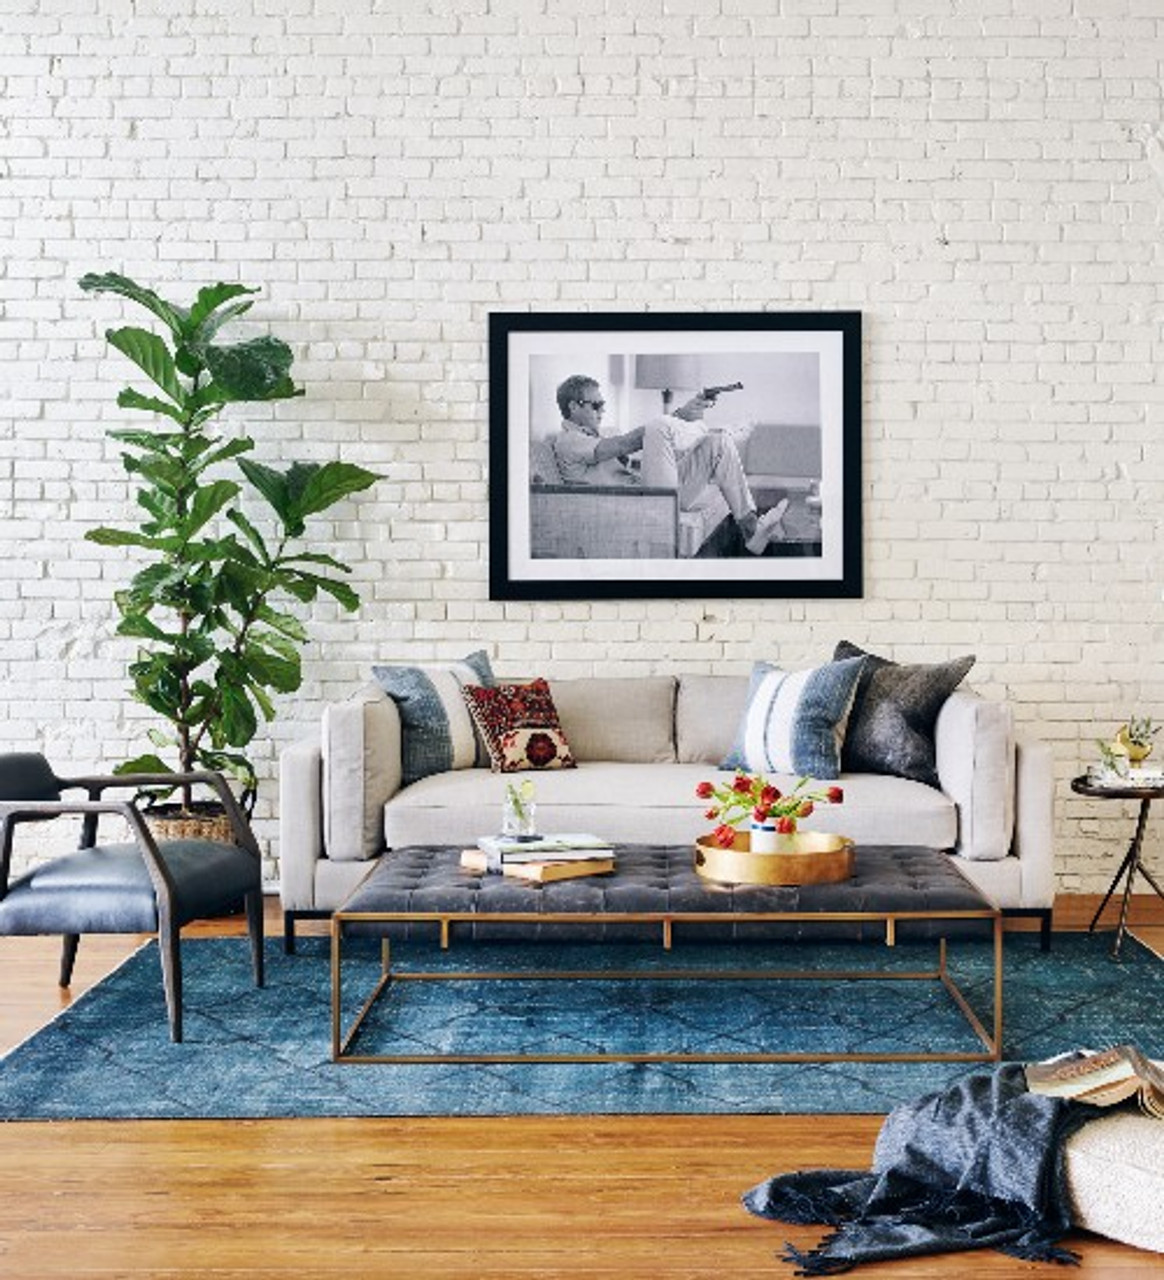 8 Essential Feng Shui Living Room Tips